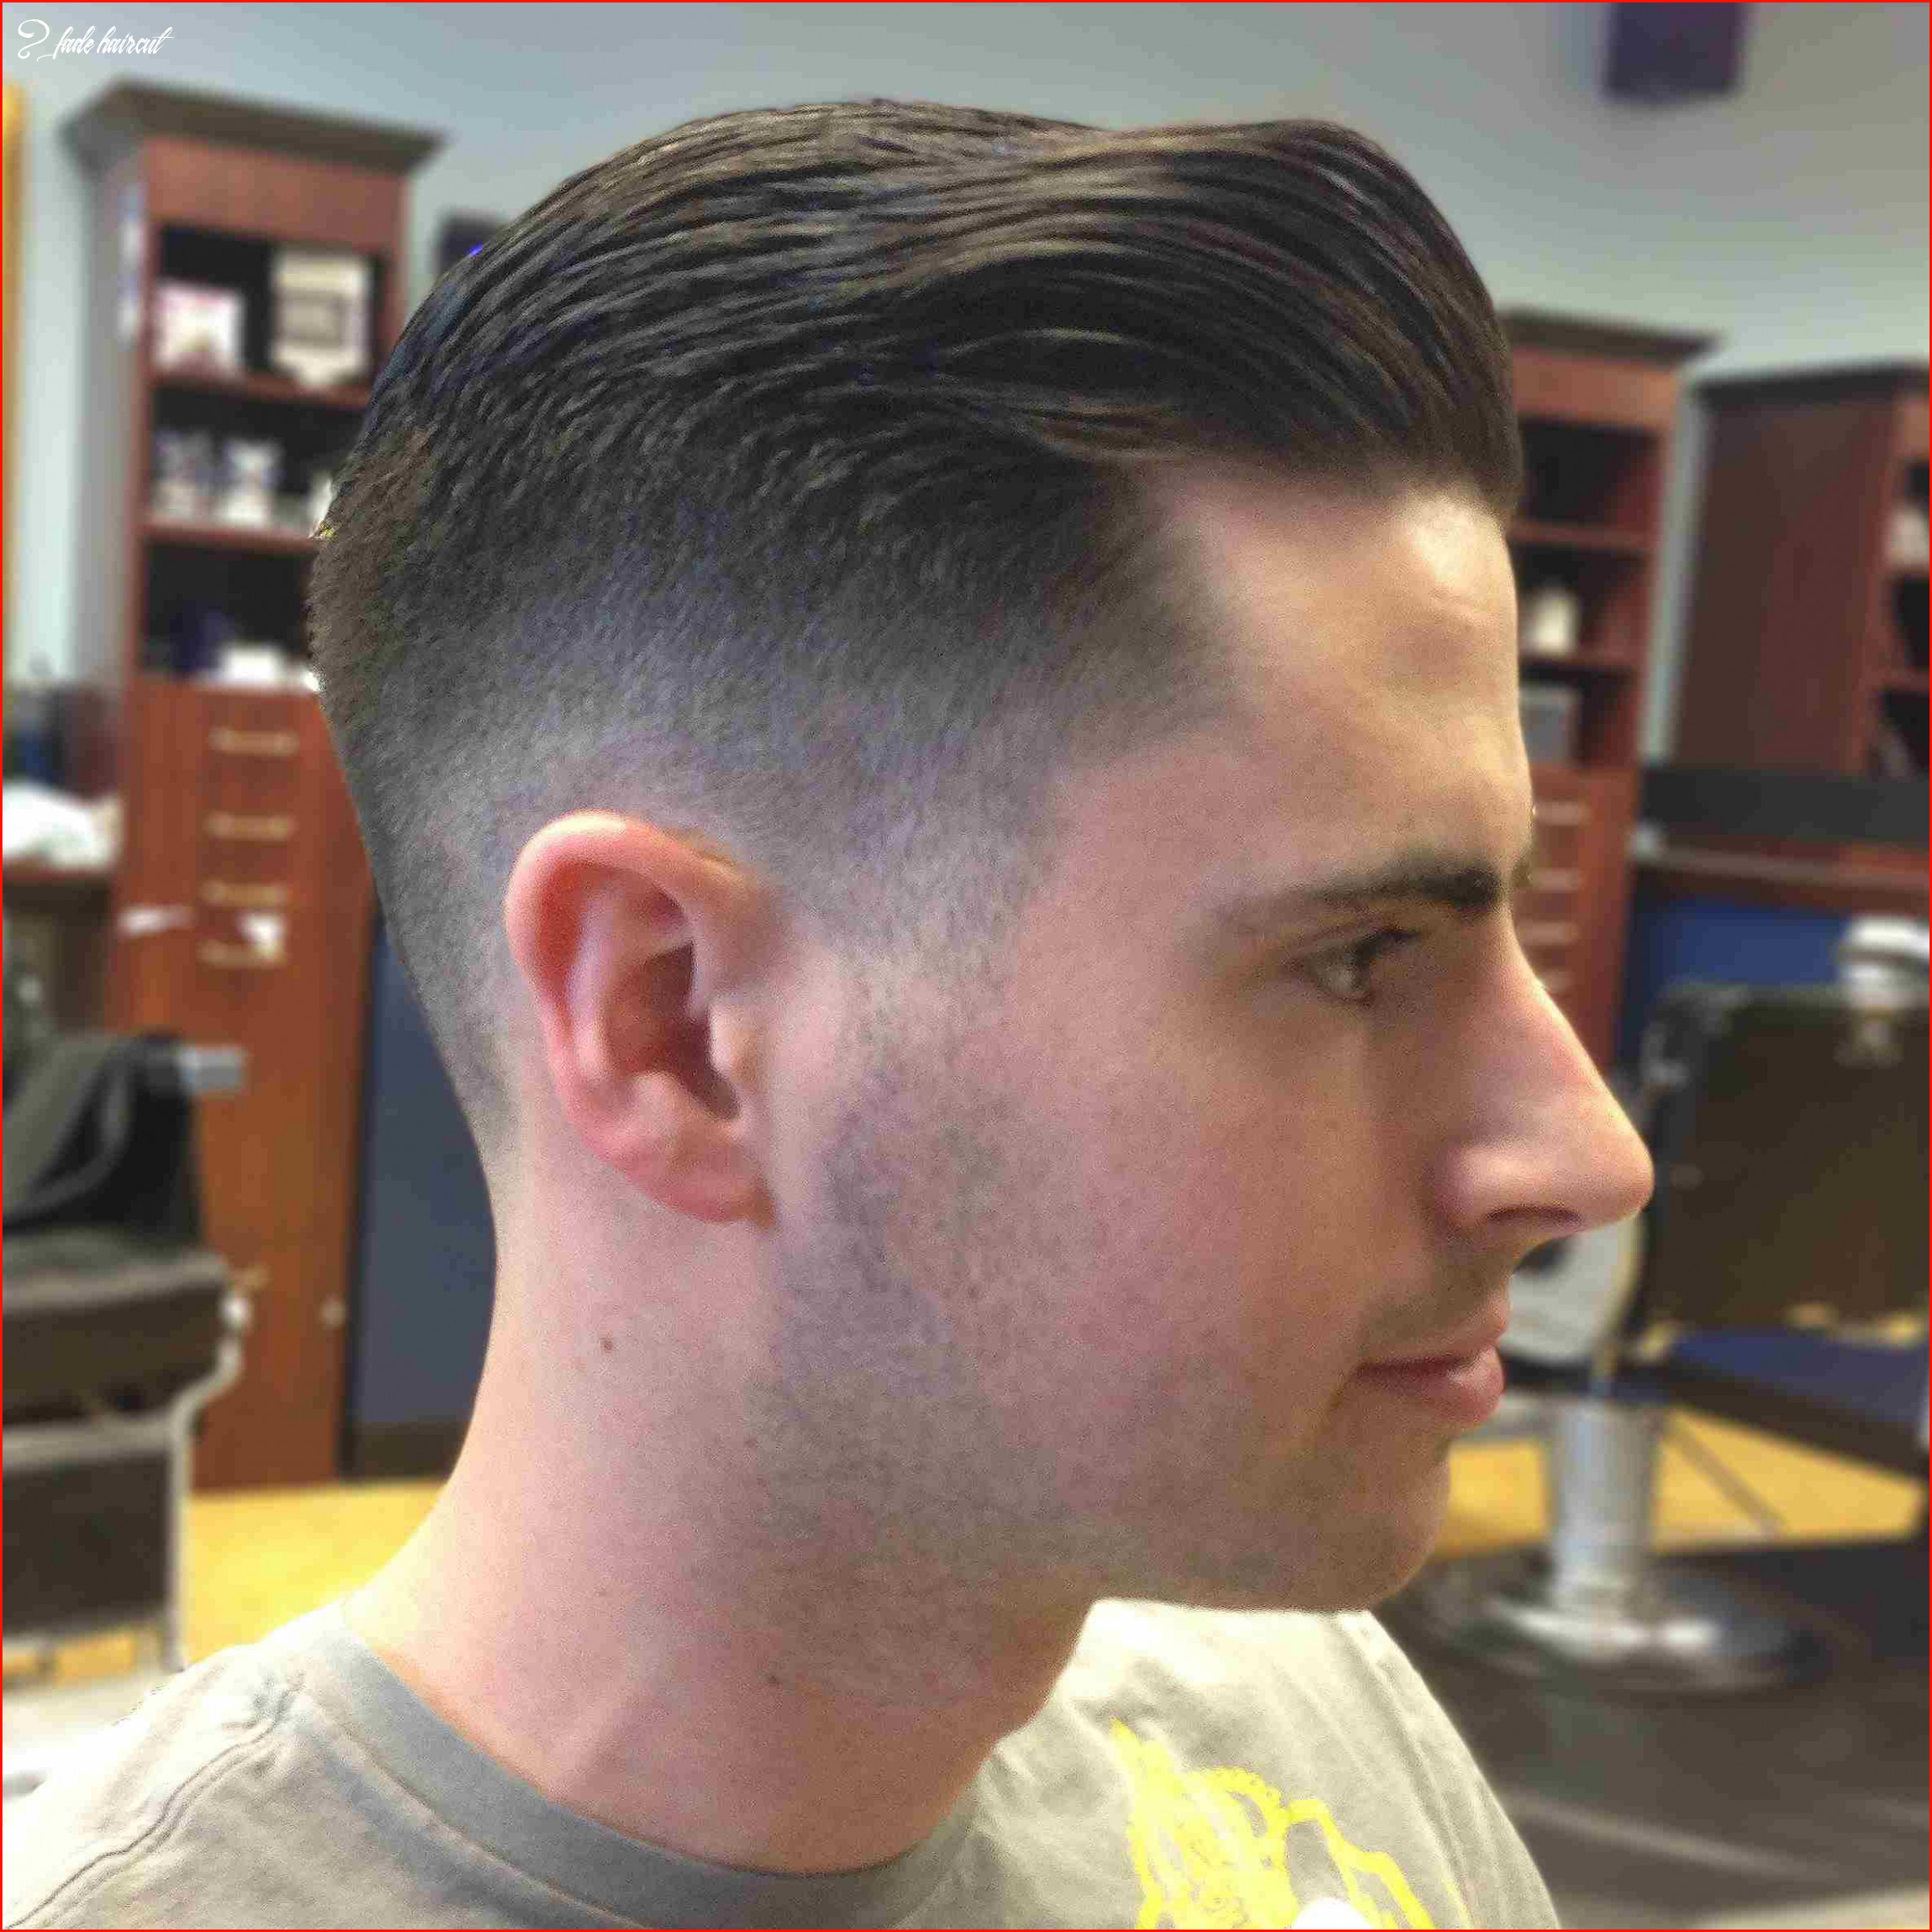 Amazing 9 Haircut Collection Of Haircuts Tutorials 9090 9 ...